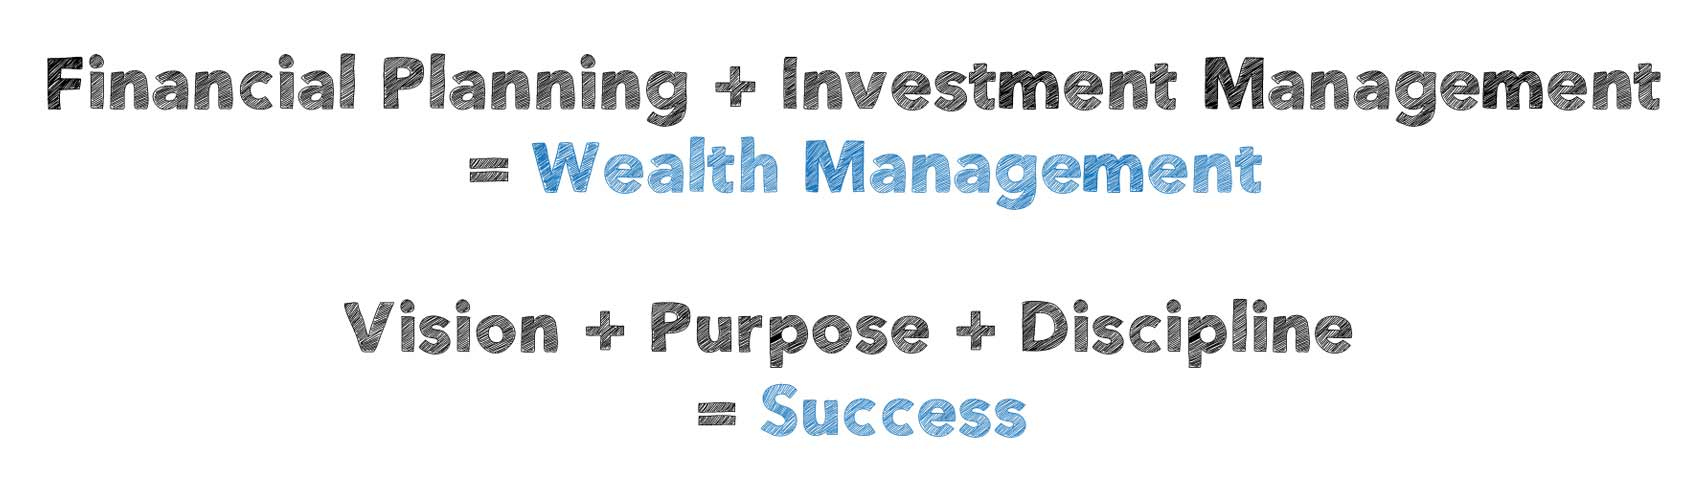 Vision + Purpose + Discipline = Success